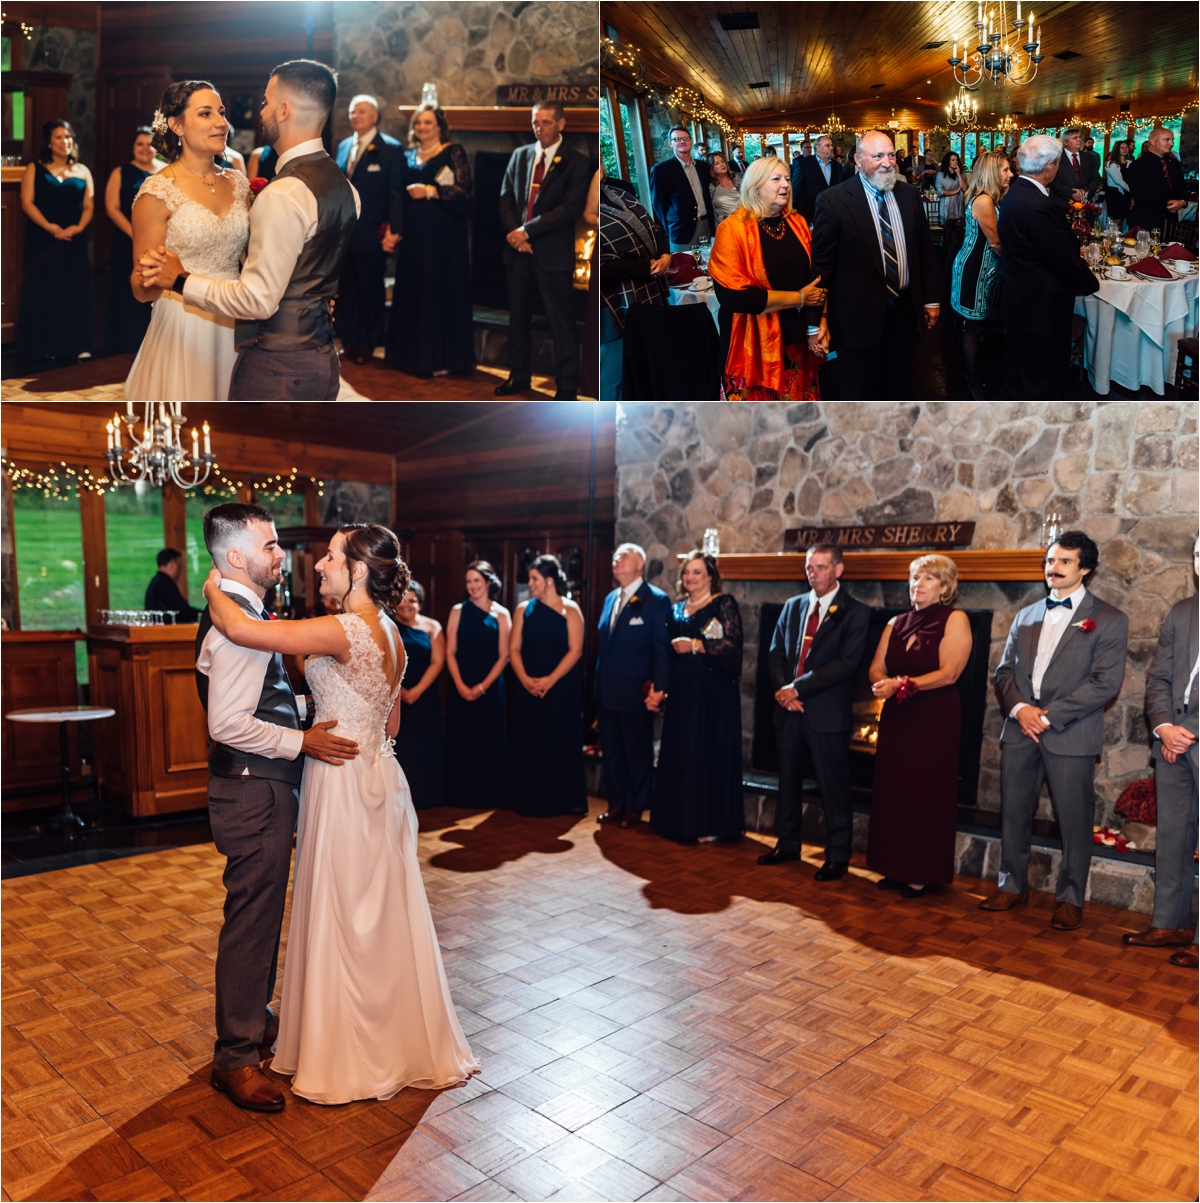 Sarah_&_Doug_Stroudsberg_Wedding_the_photo_farm_0045.jpg